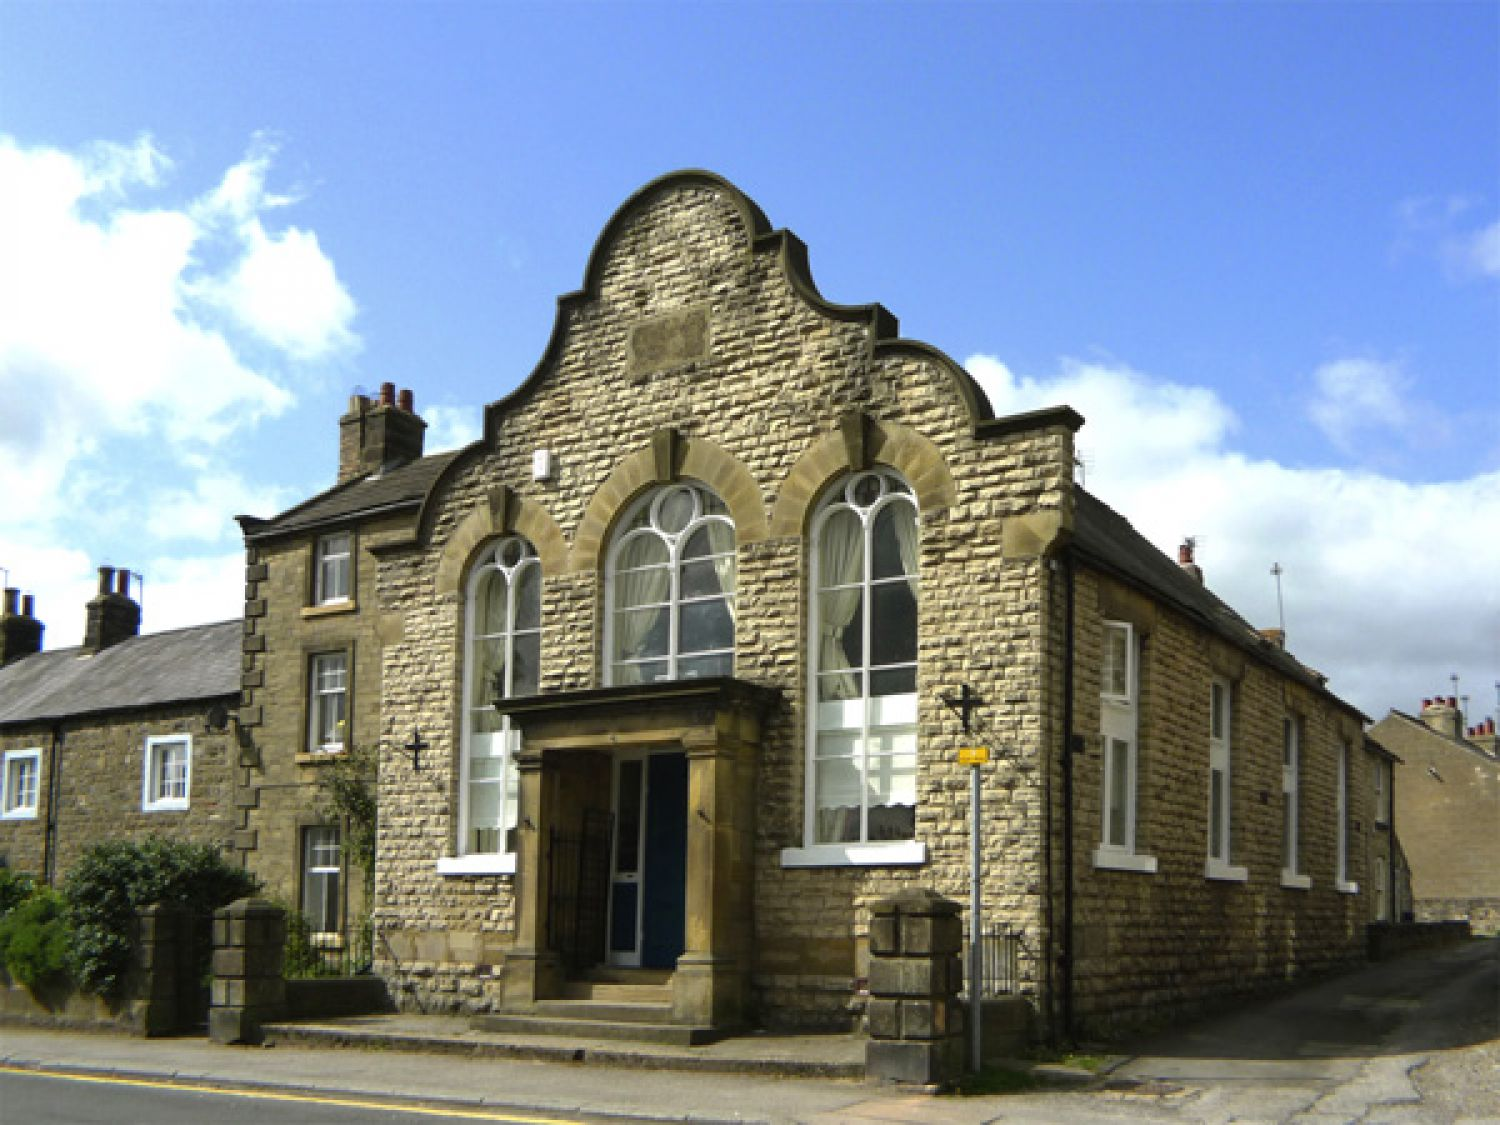 Old Chapel Post House Masham Yorkshire Dales Self Catering Holiday Cottage